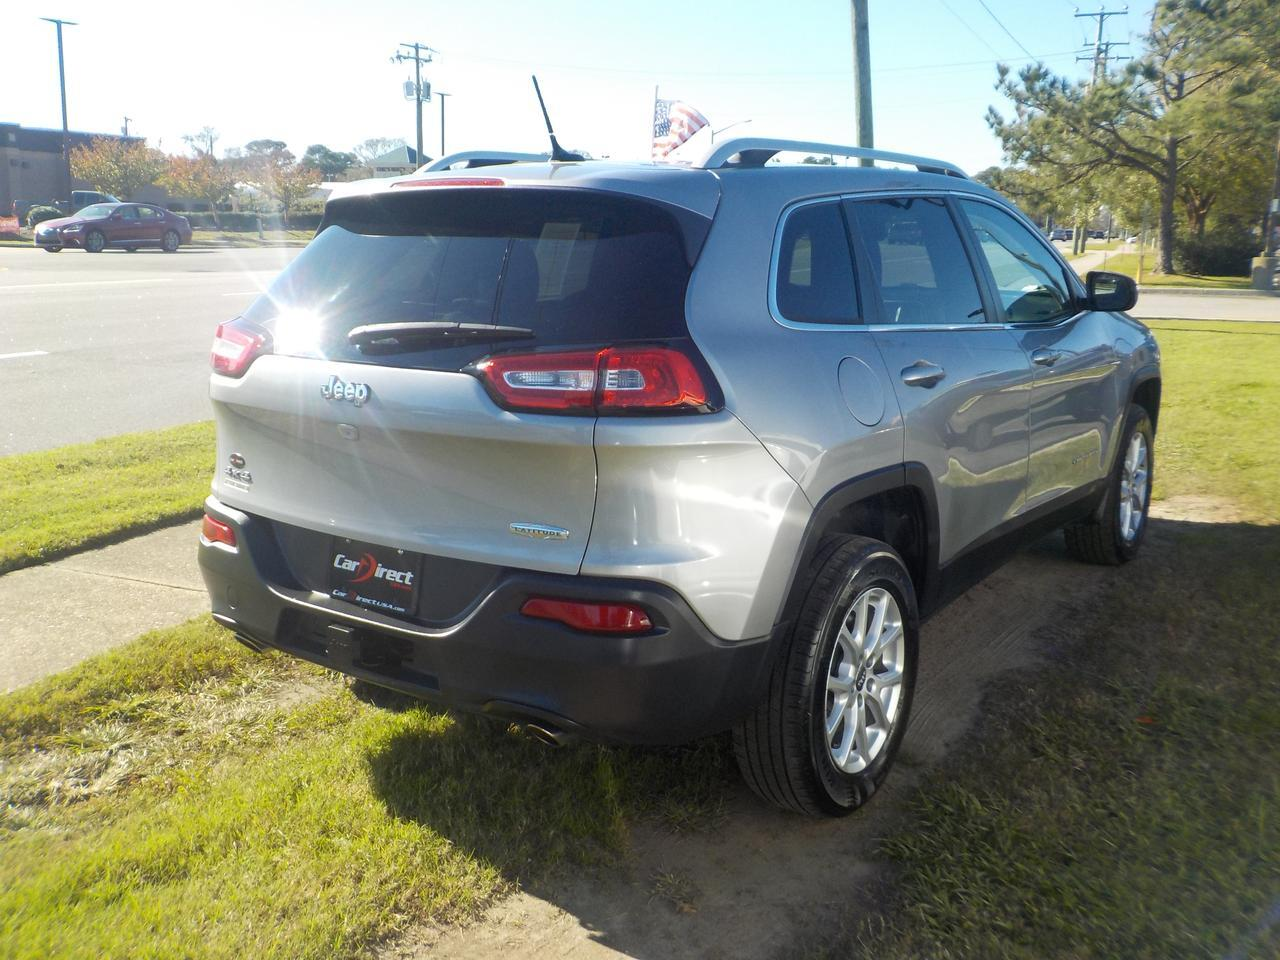 2014 JEEP CHEROKEE LATITUDE V6 4X4, KEYLESS START, BLUETOOTH, BACKUP CAM, HEATED SEATS, TOW PACKAGE, ONLY 74K MILES! Virginia Beach VA